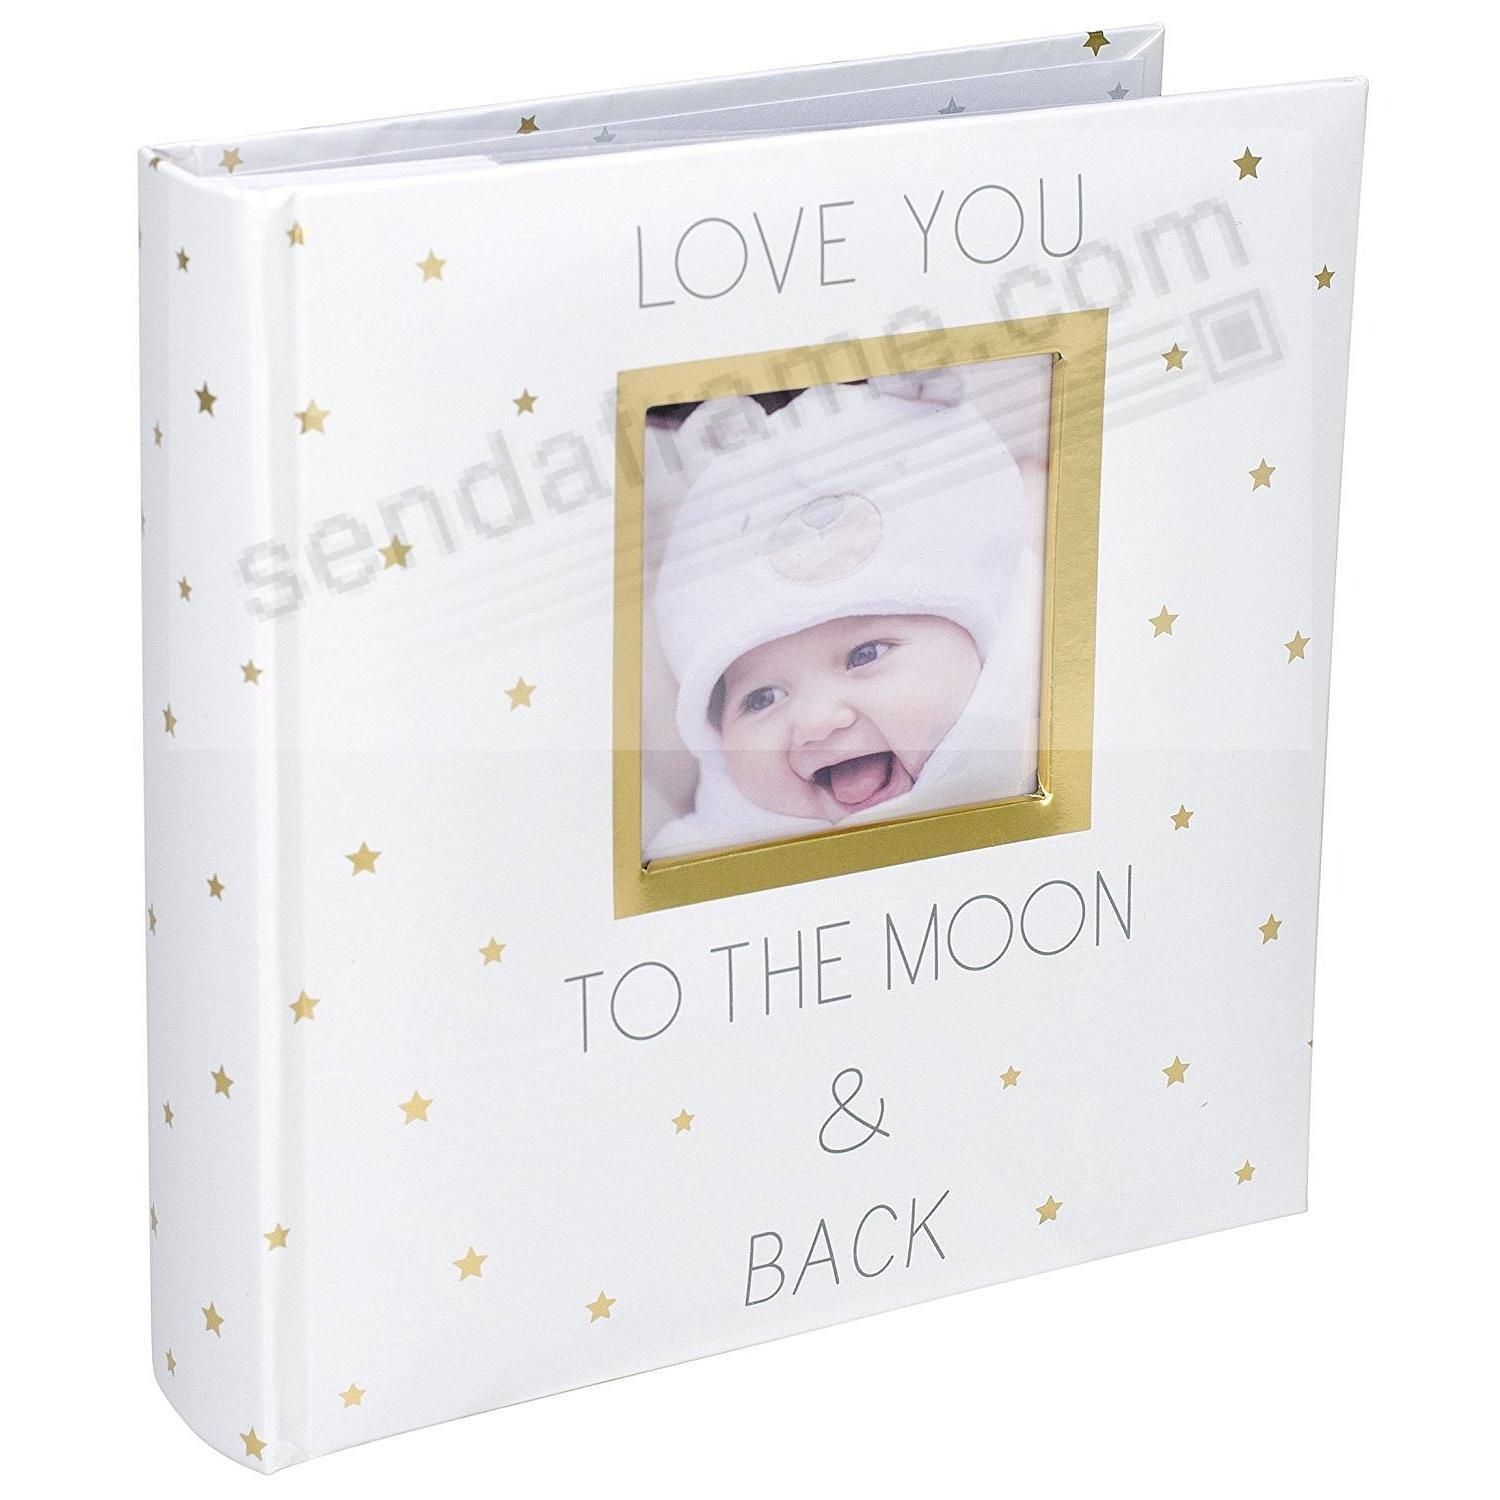 LOVE YOU TO THE MOON AND BACK brag-book photo album 2-up display by Malden®